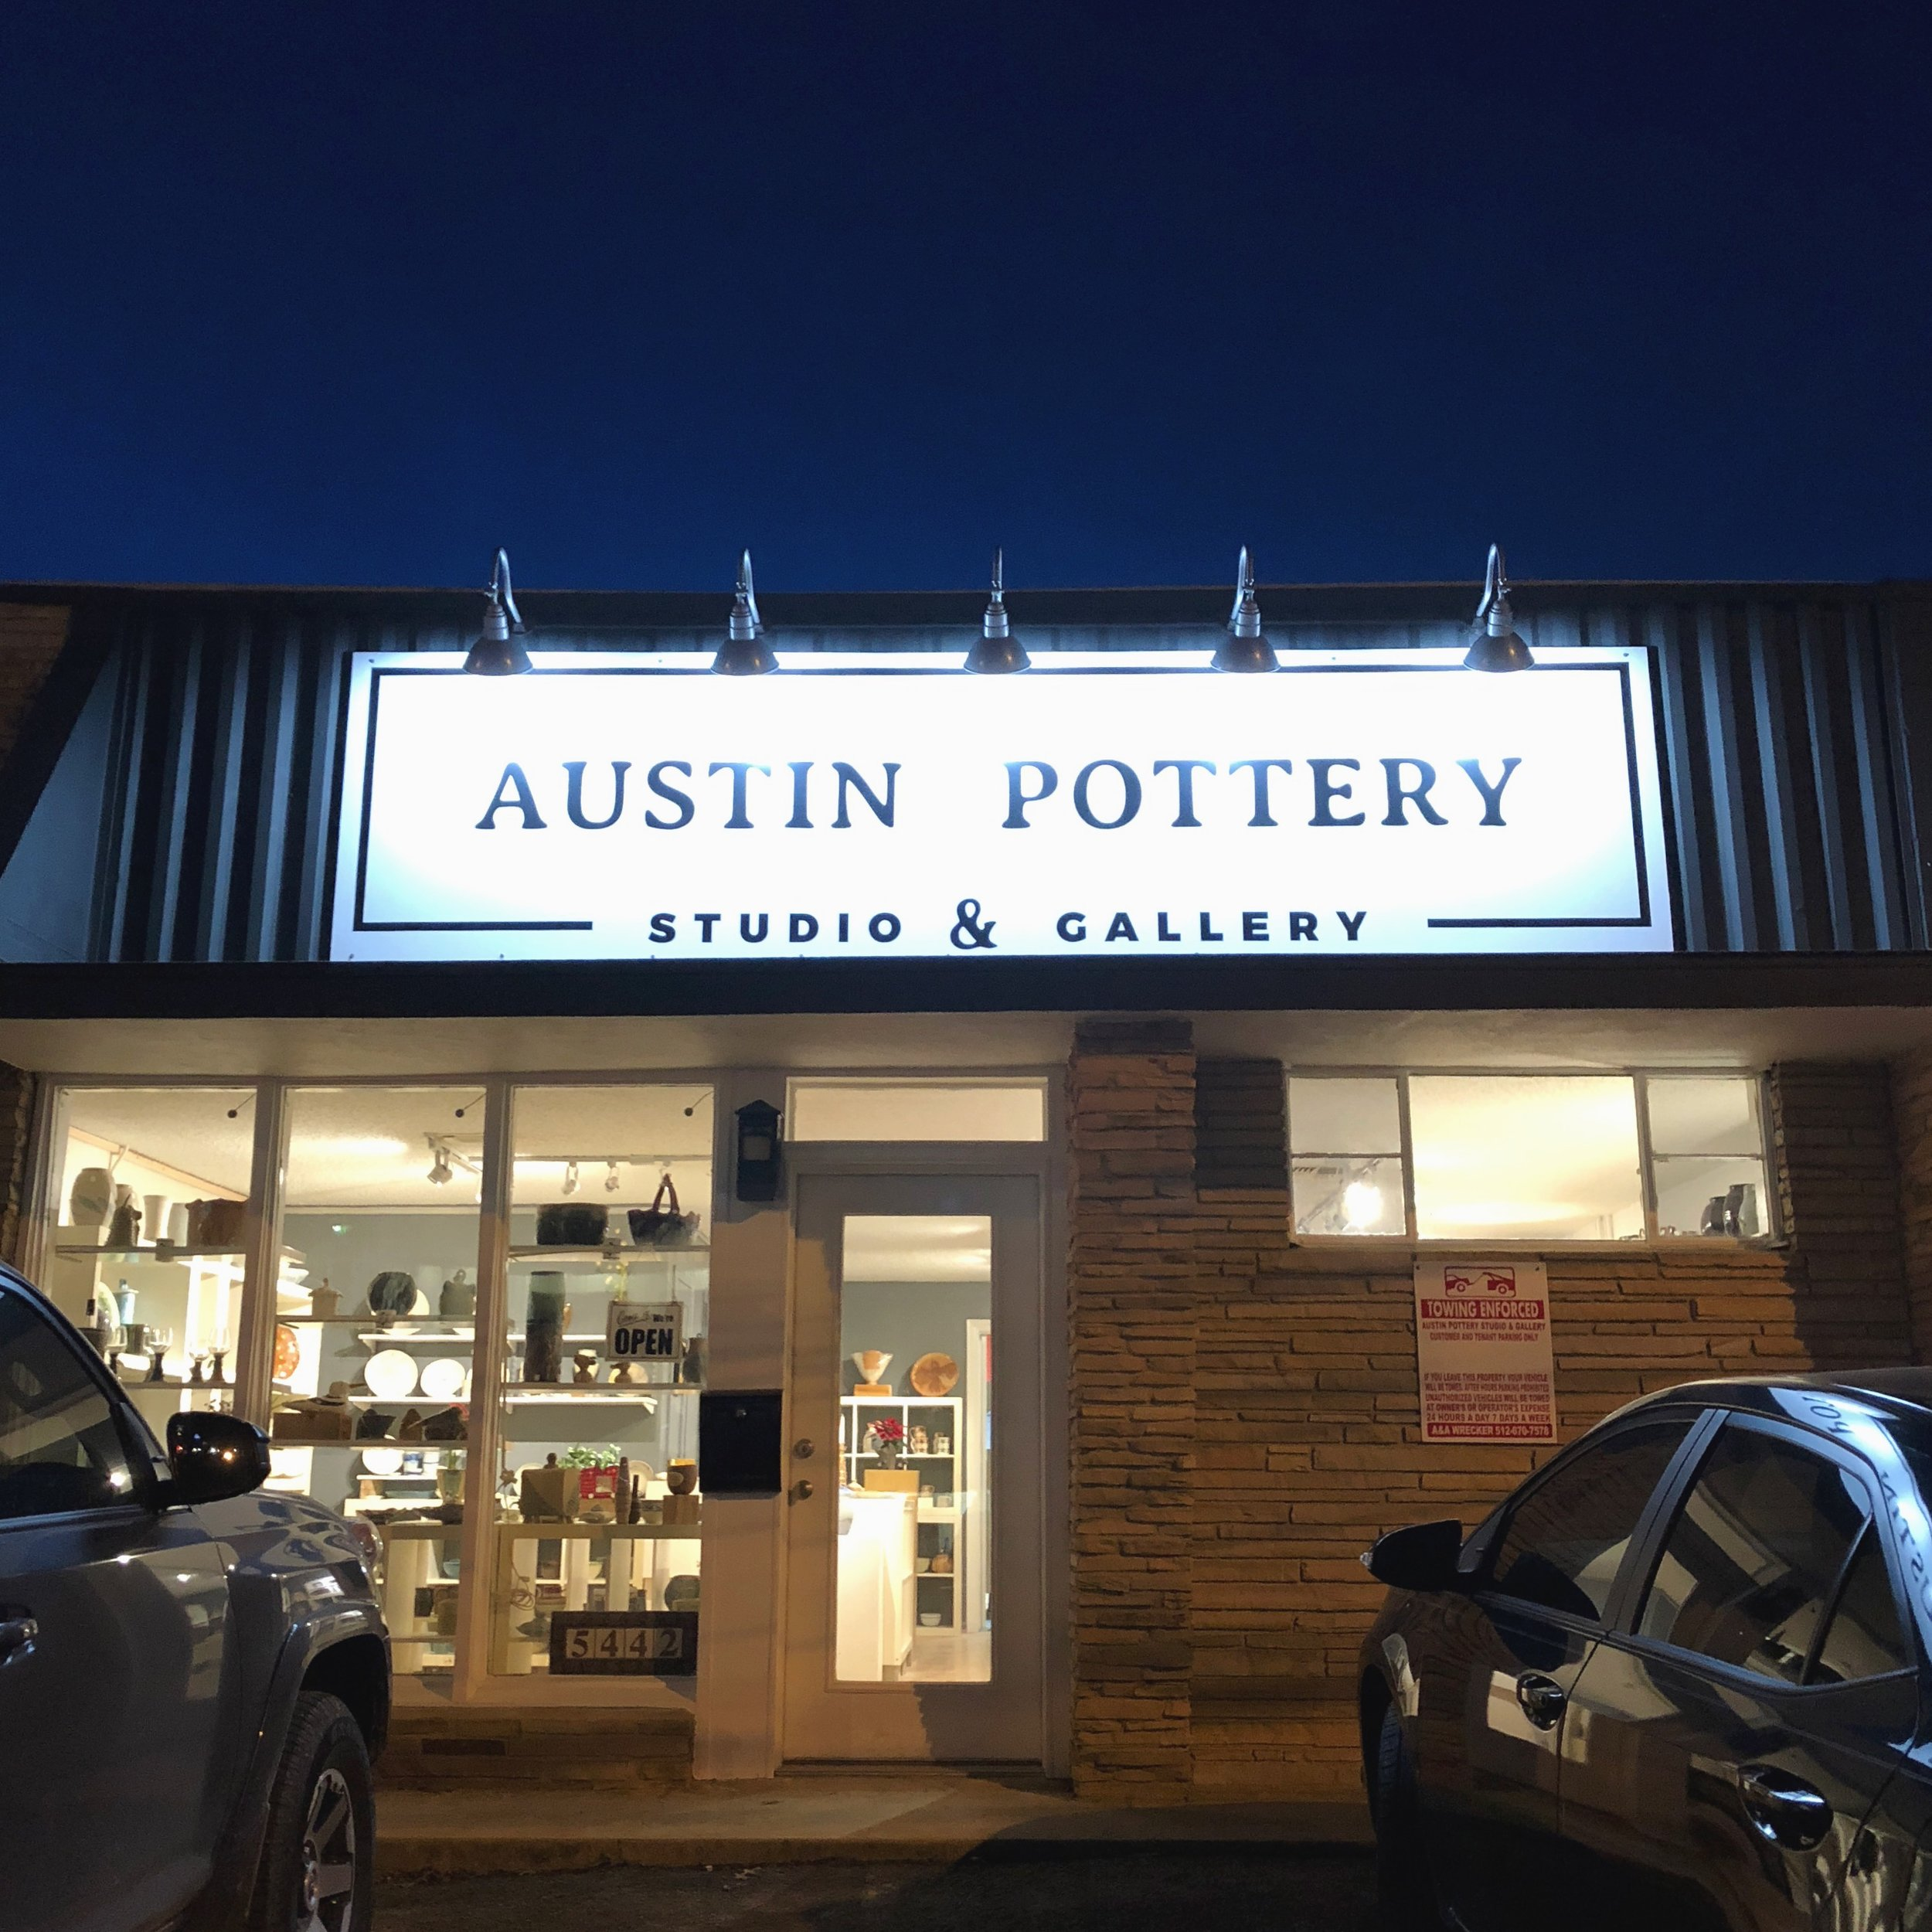 Austin-Pottery-New-Sign-Lights-Gallery